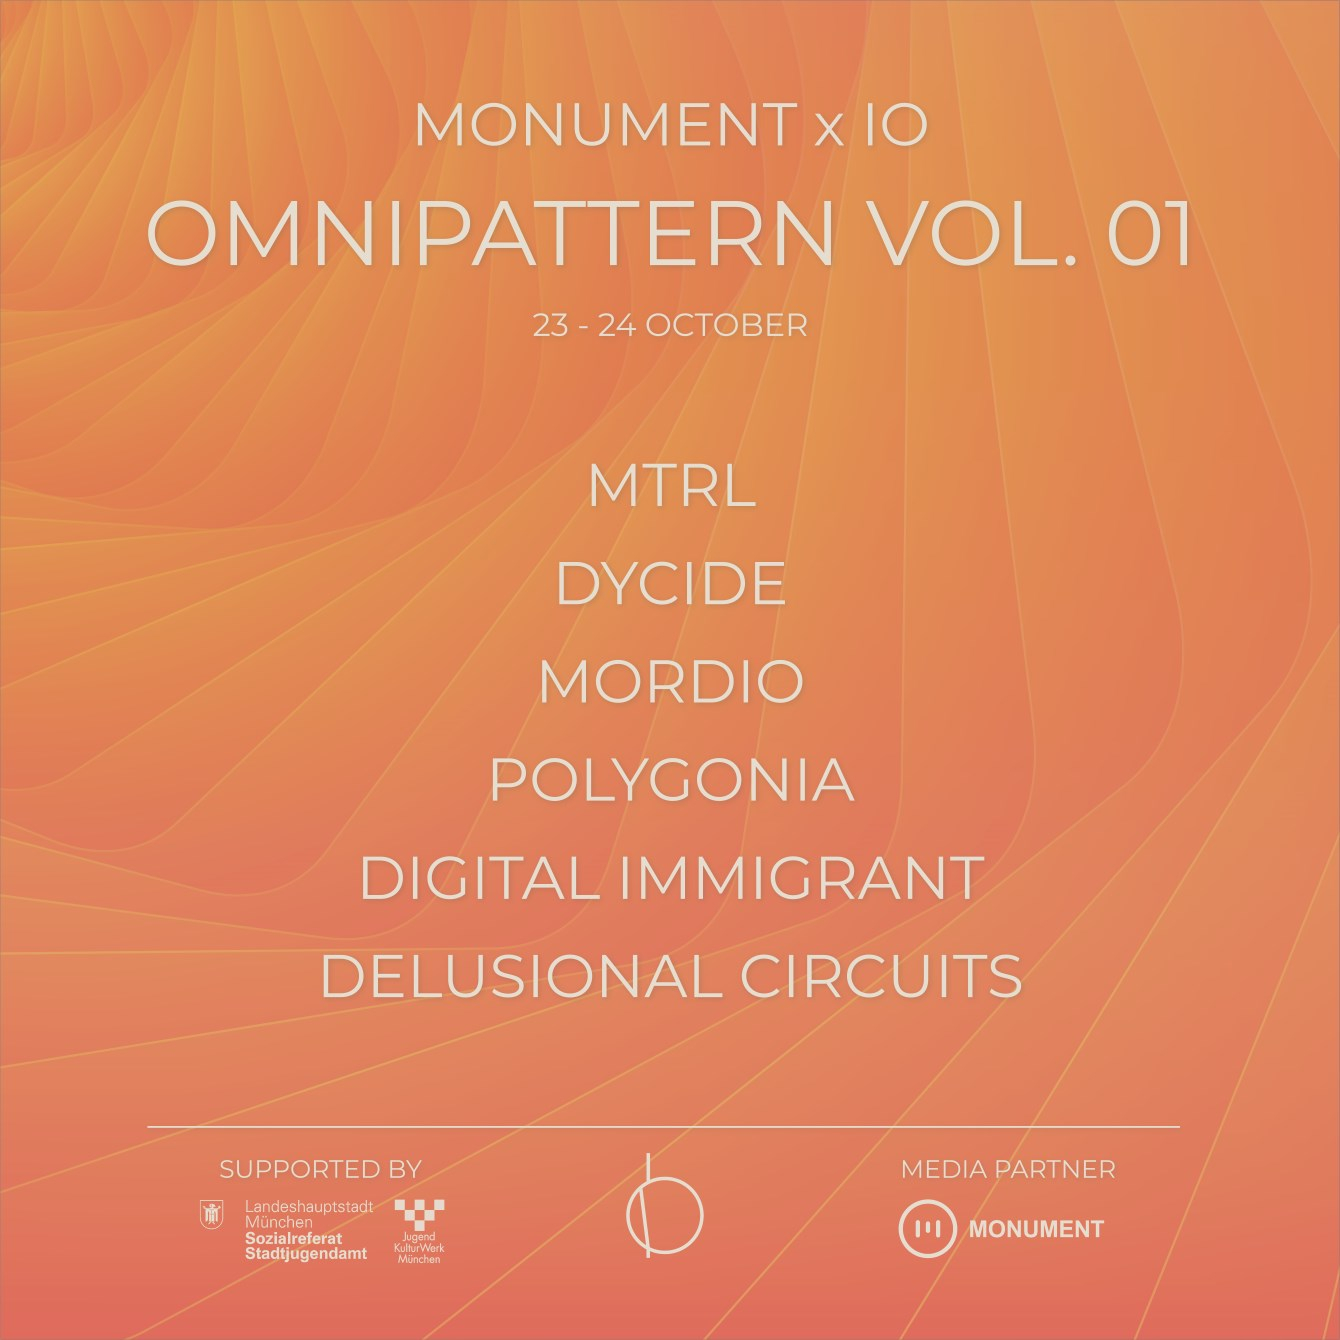 Monument x IO - Omnipattern VOL. 01 - Flyer front